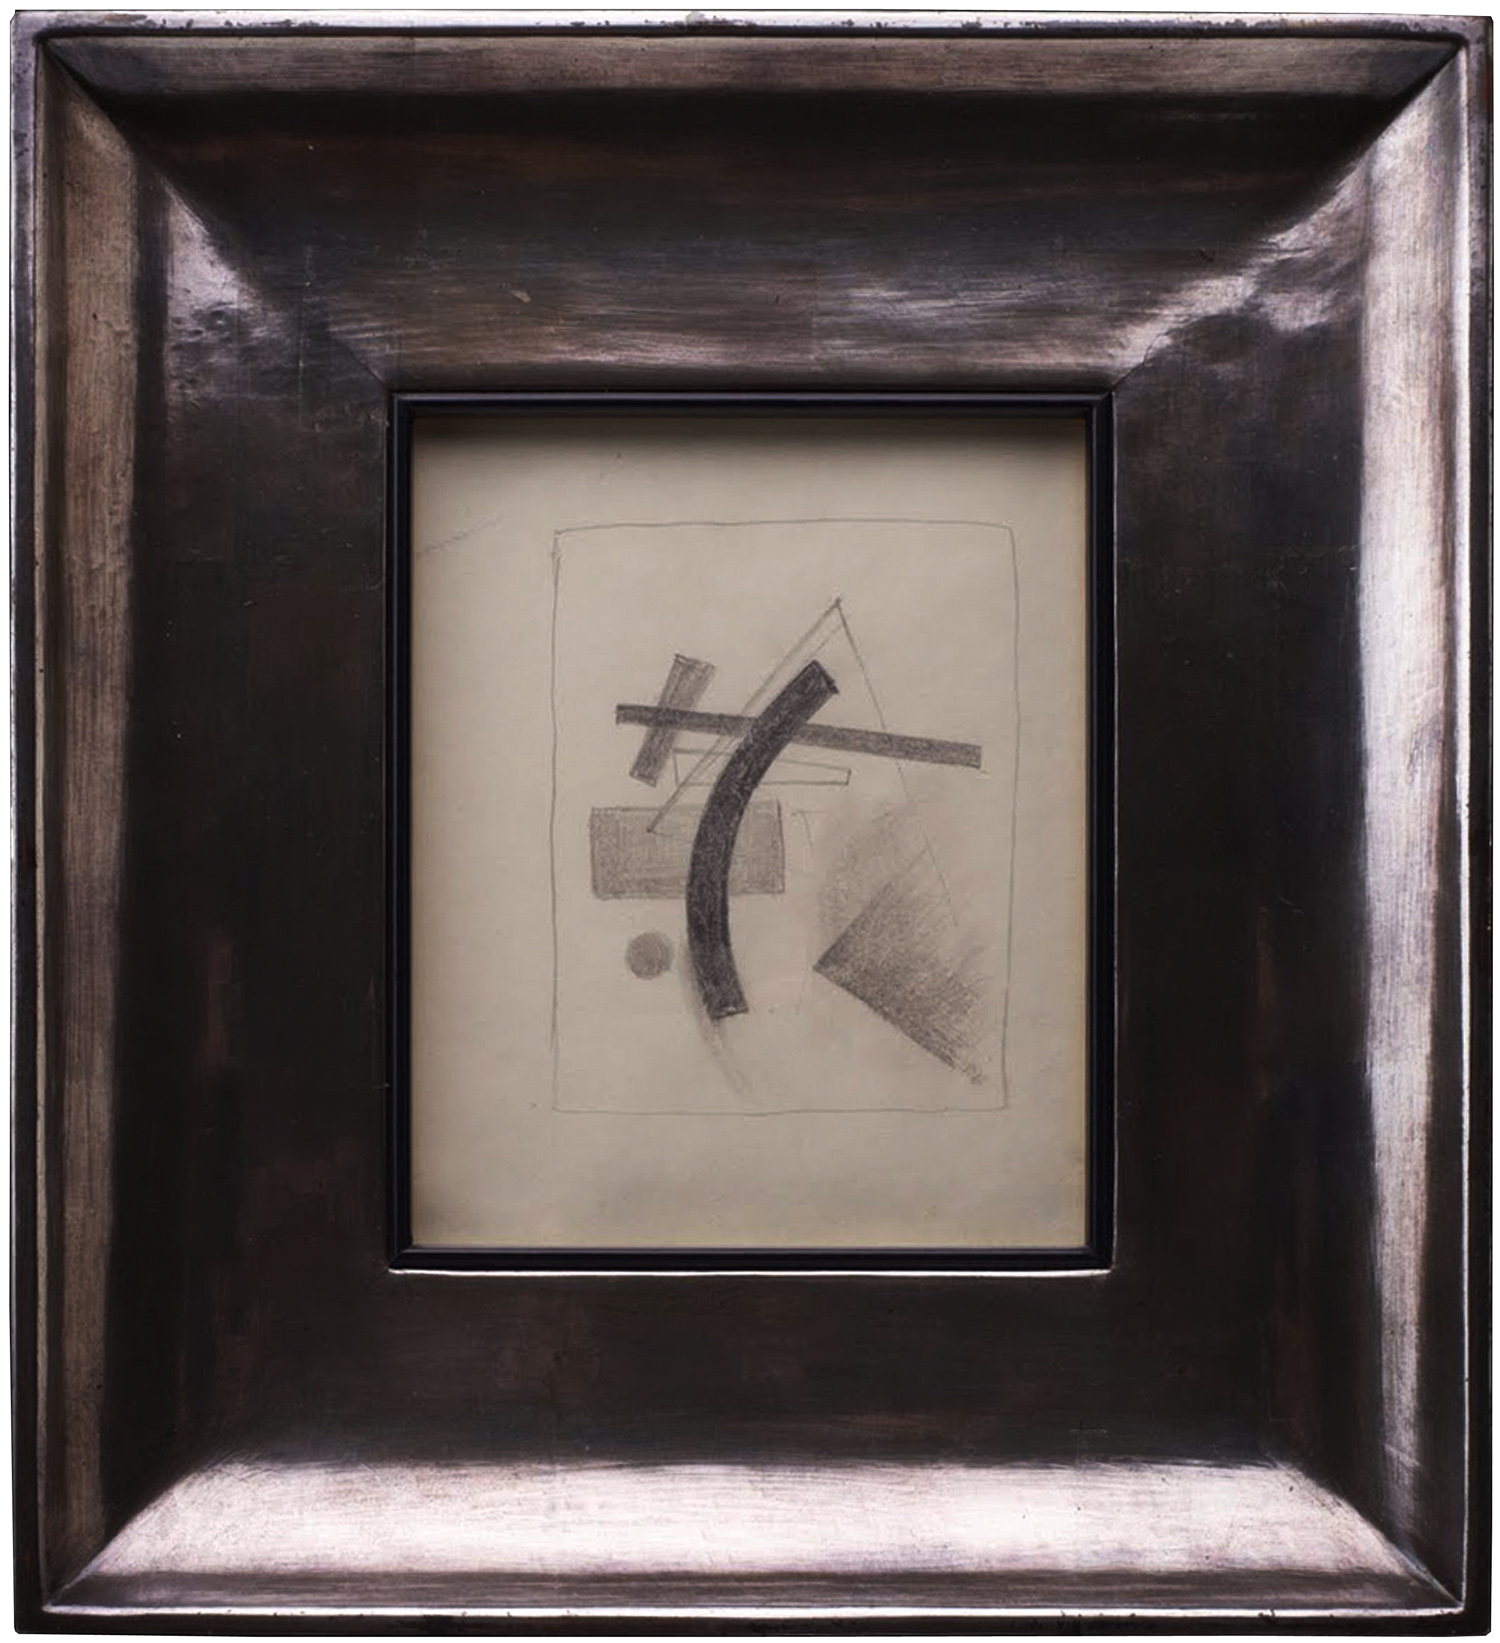 KNOWN WORK BY KASIMIR MALEVICH, IN ORIGINAL FRAME